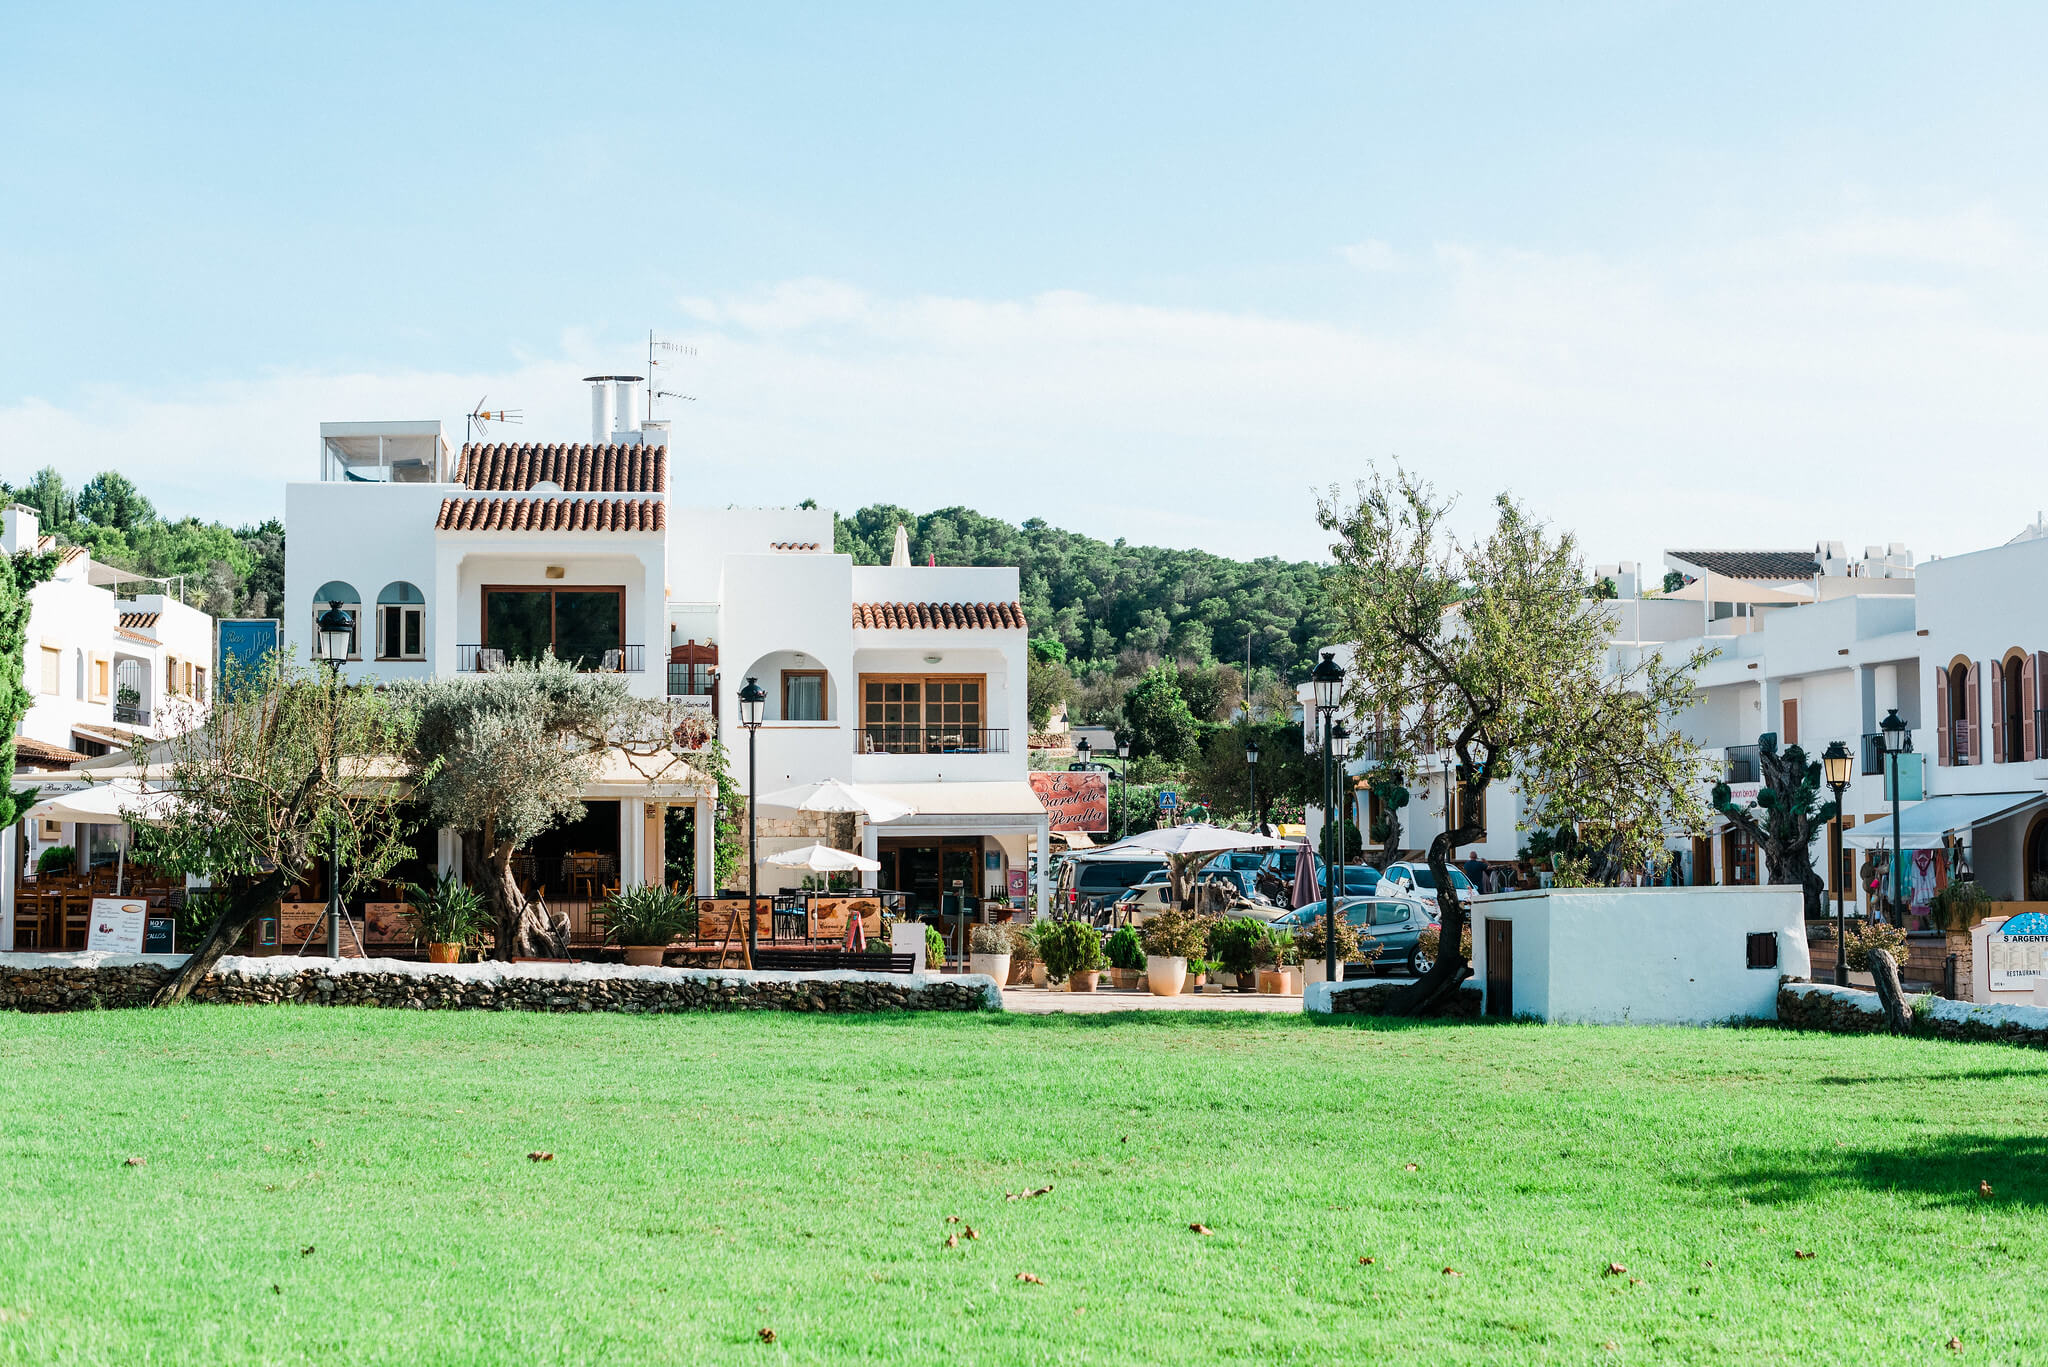 https://www.white-ibiza.com/wp-content/uploads/2020/05/white-ibiza-villas-where-to-buy-san-carlos-01.jpg